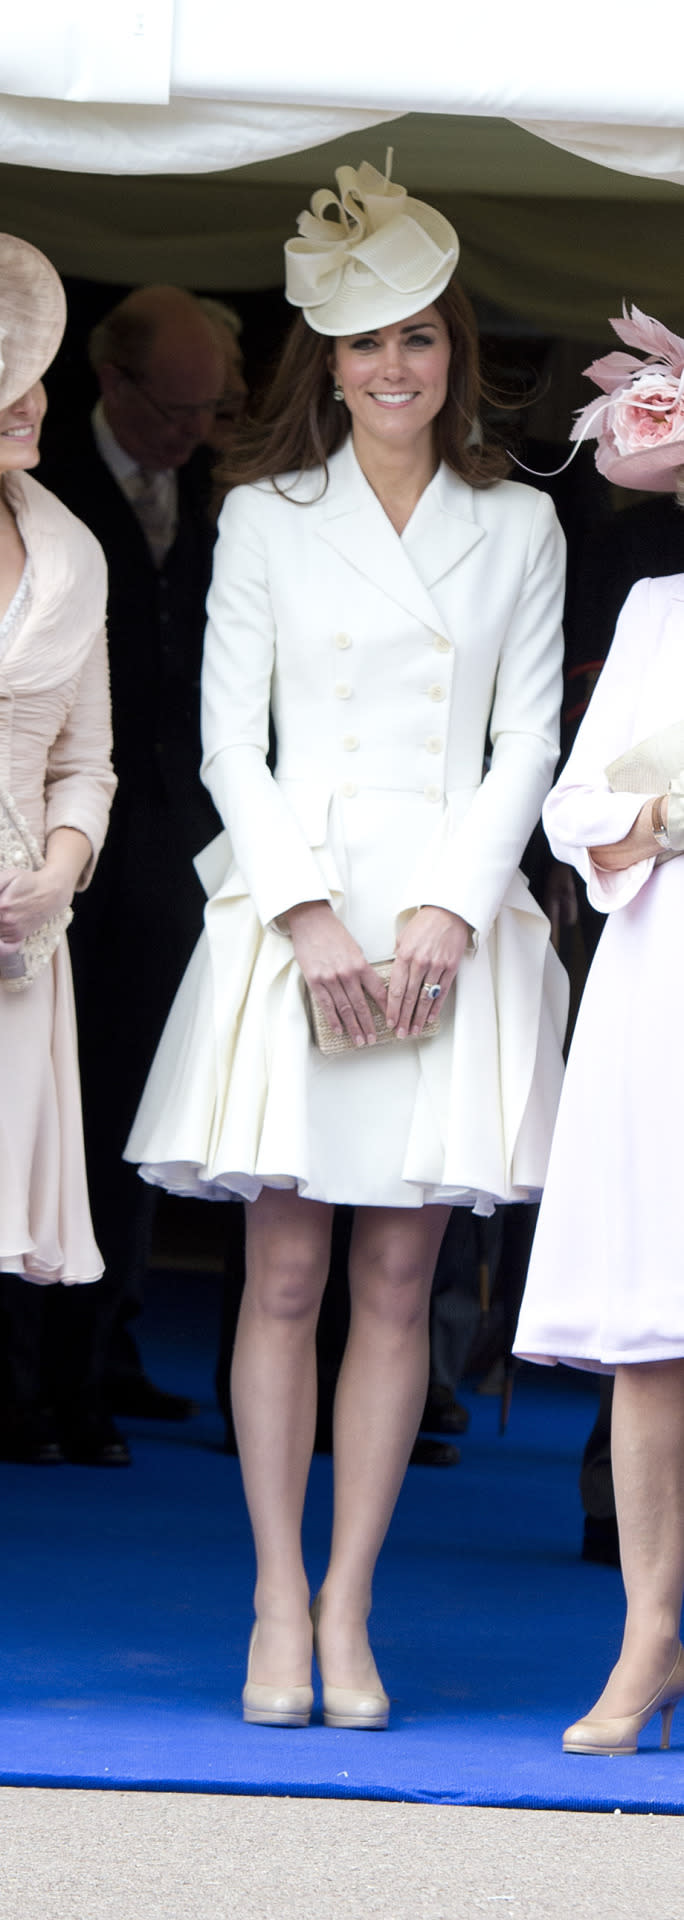 <p>Kate went for a white Alexander McQueen coat for the annual Order of the Garter service. She accessorised with nude pieces from L.K. Bennett and a chic white hat by Jane Corbett. </p><p><i>[Photo: PA]</i></p>